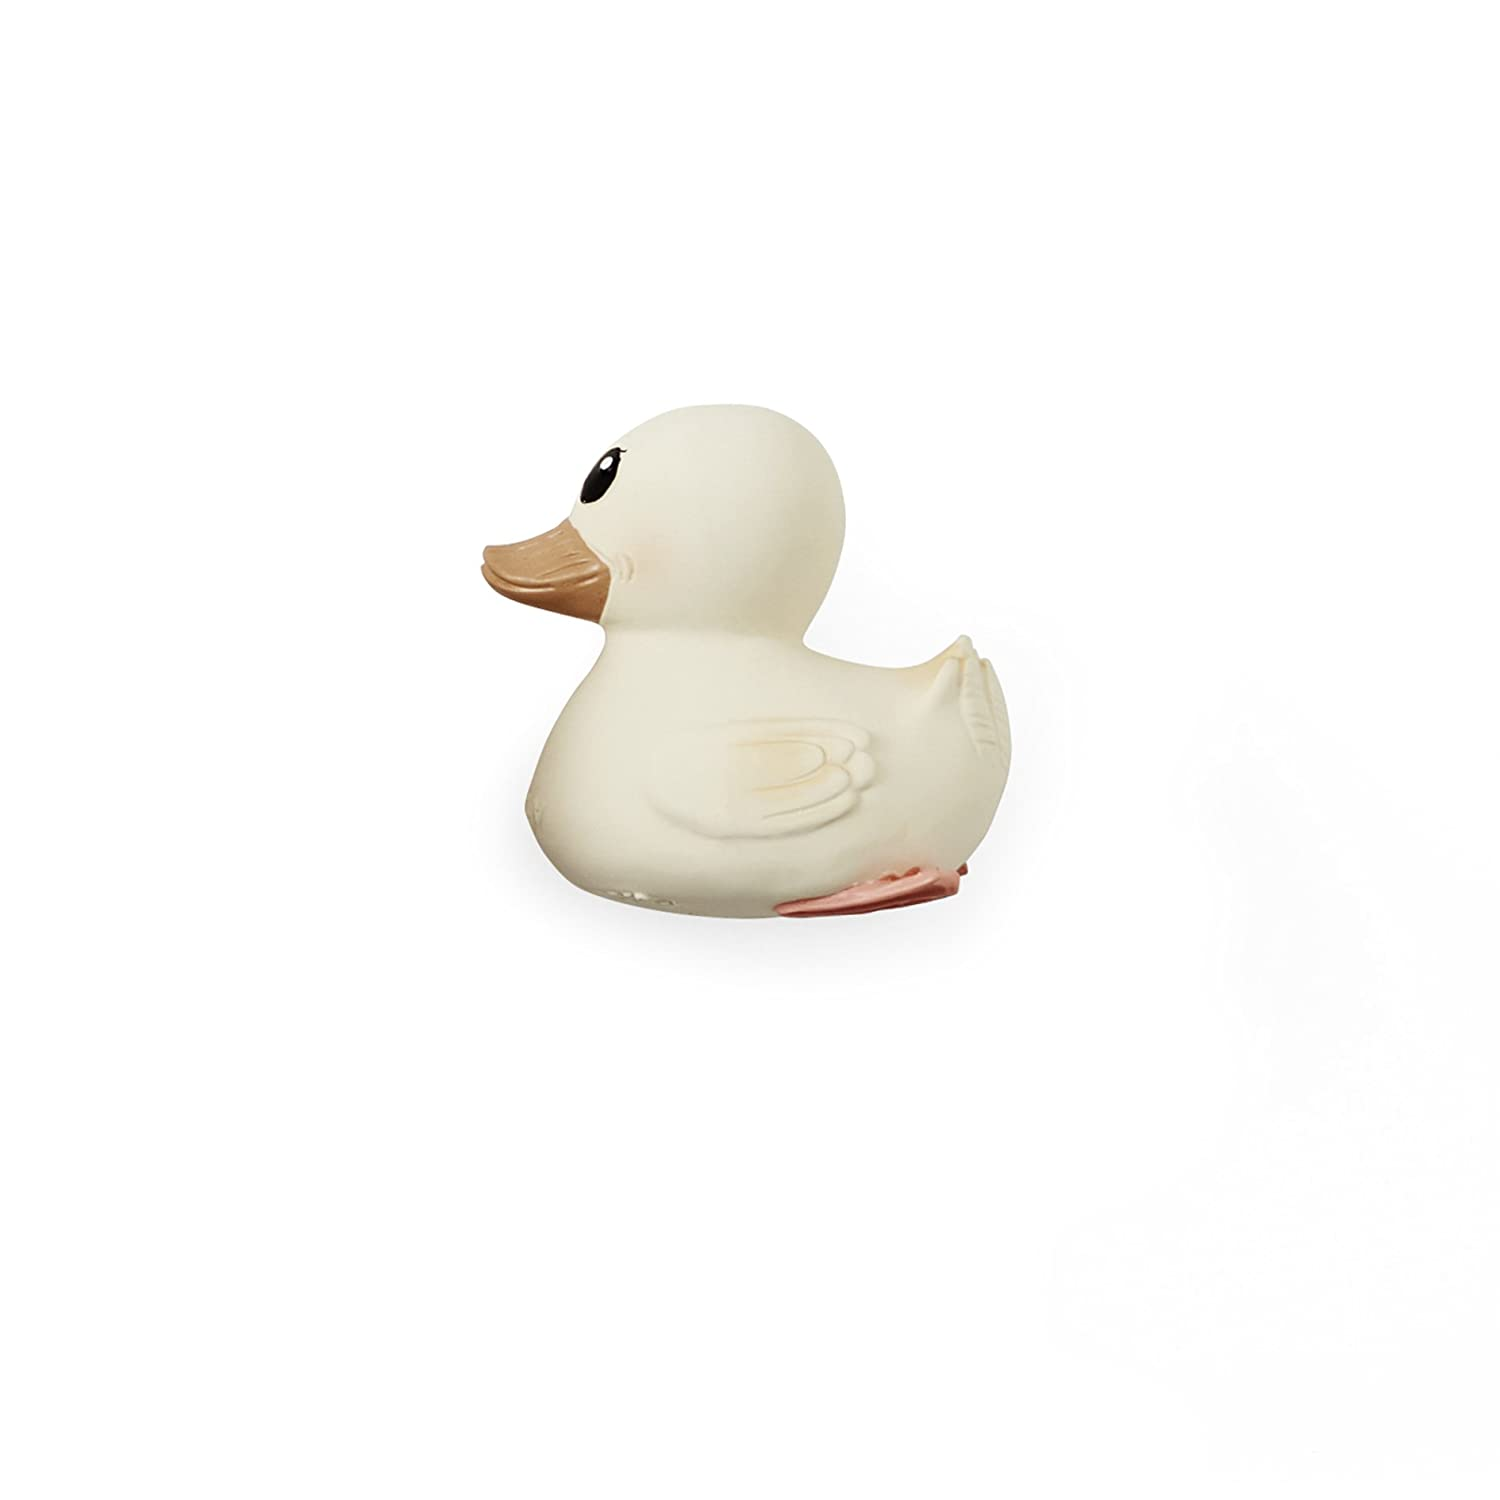 Hevea - Patito Kawan mini, de caucho natural (HE553160)